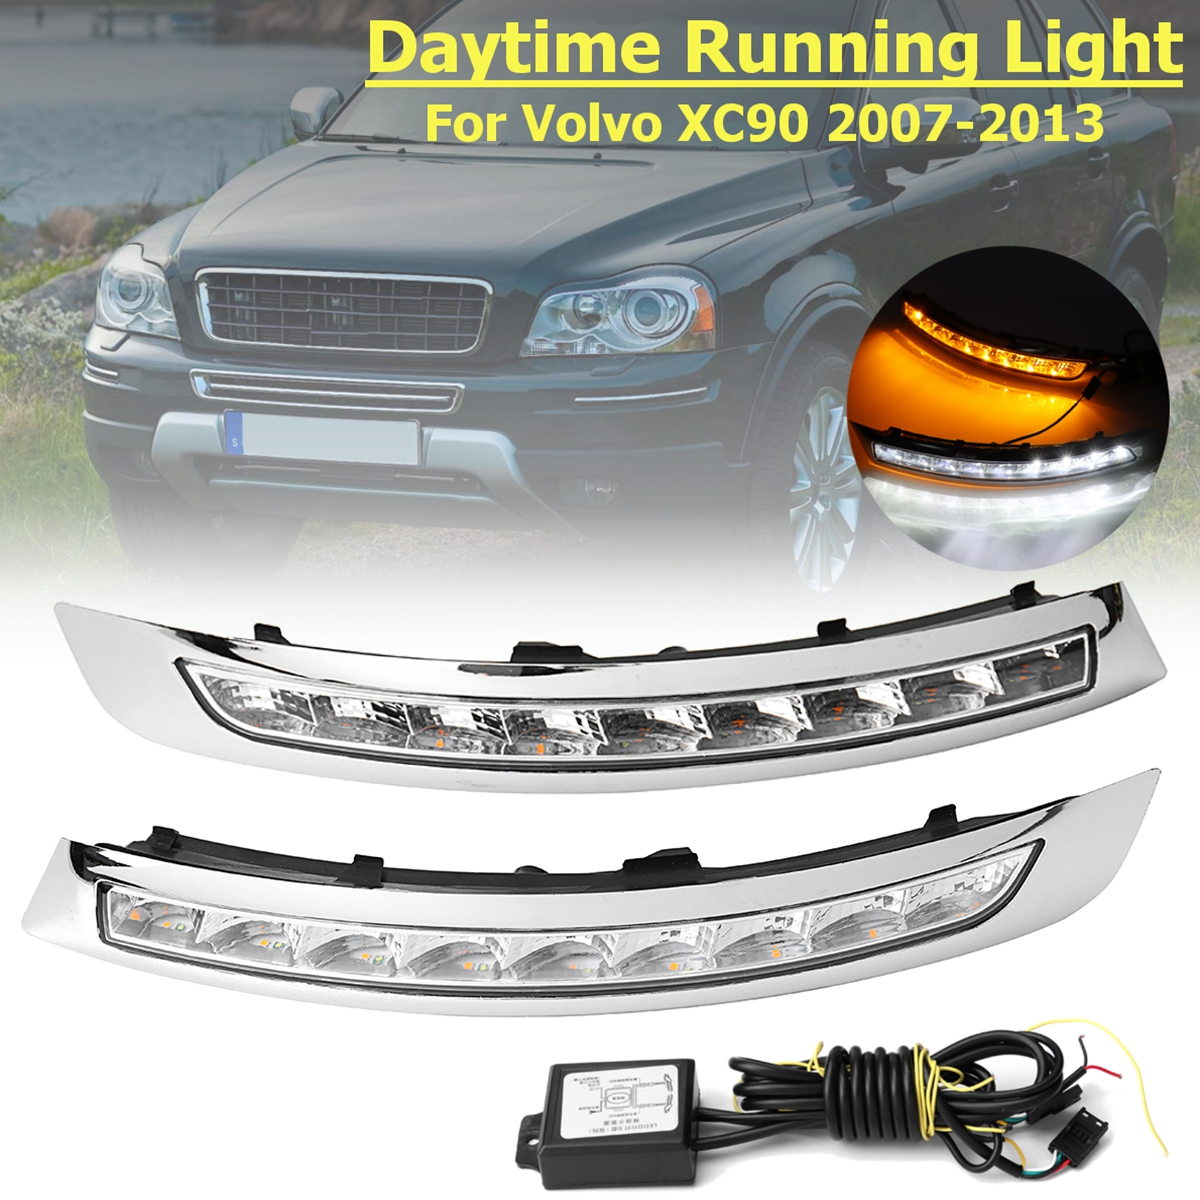 1 Pair LED DRL Daytime Running Lights Lamp Turning Signal fog lamp 12V 6000k Fog Lamp Frame Fog Light For Volvo XC90 2007~2013 g4 1 5w 40 50lm led car turning signal light bulbs 12v pair